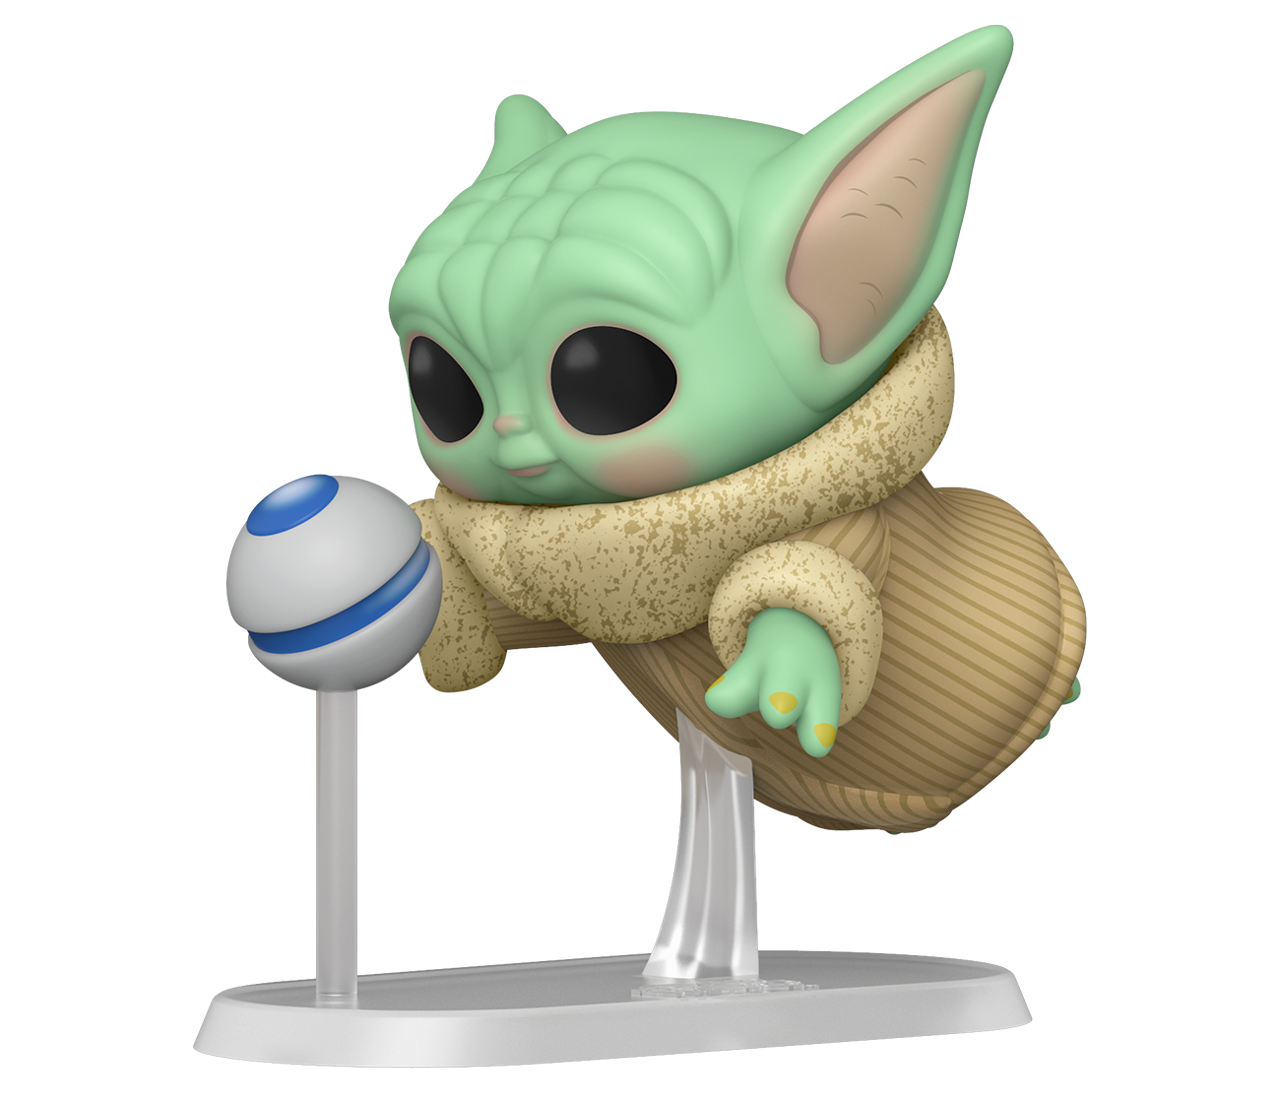 Funko Pop!-Inspired Grogu Balloon out of the box